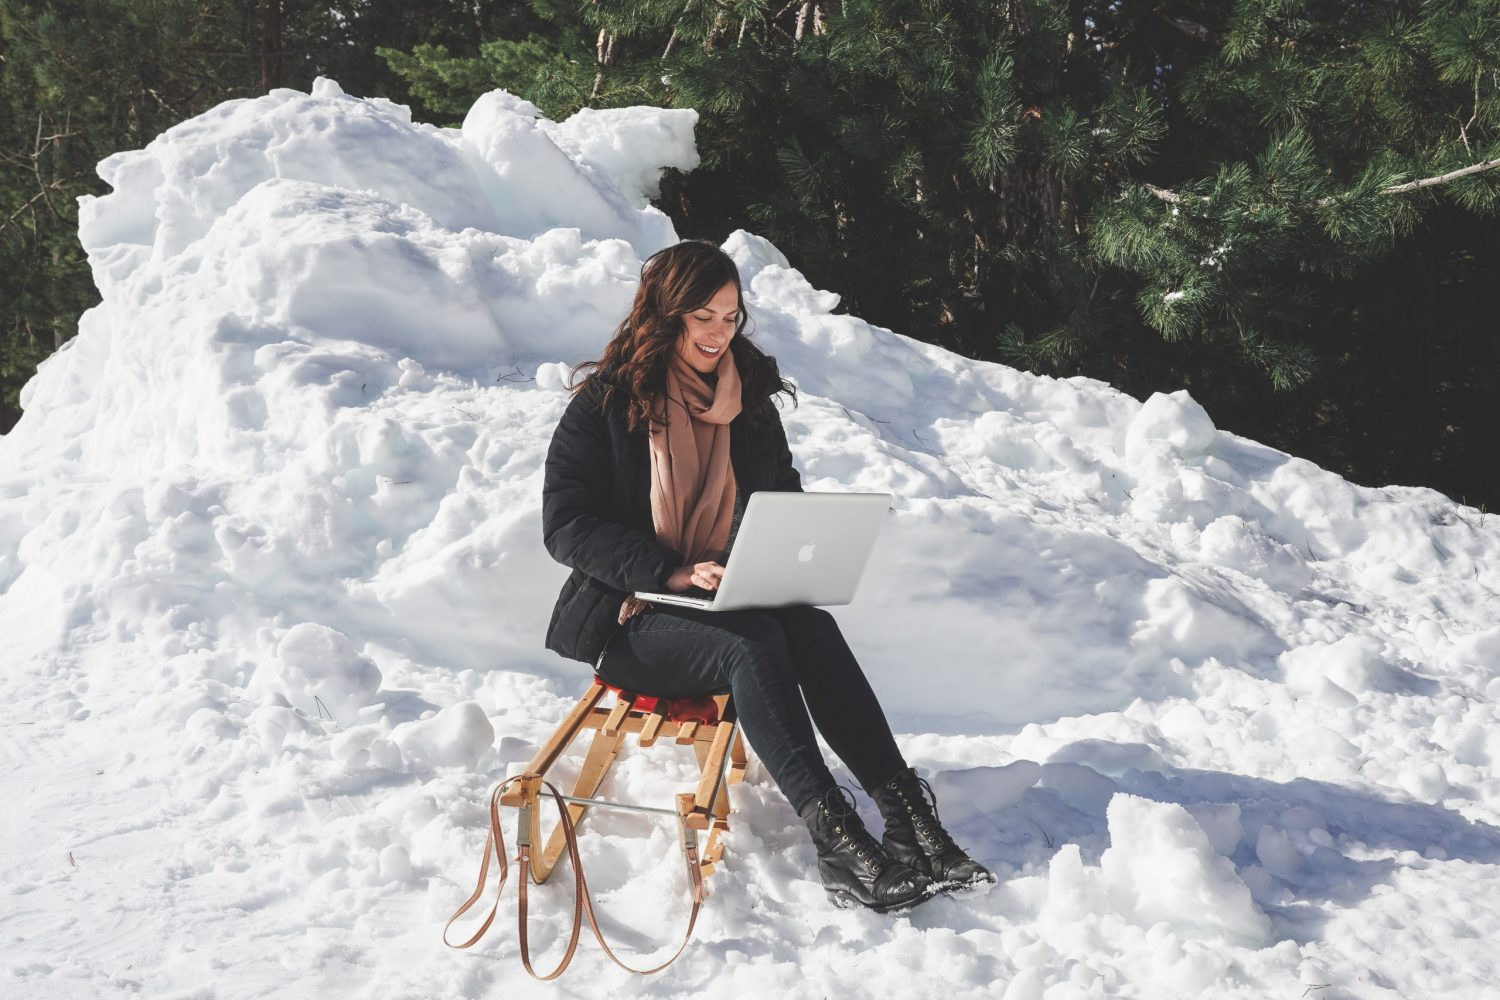 Digital nomad life means living that laptop lifestyle and working anywhere, even if that means working remotely in the snow!